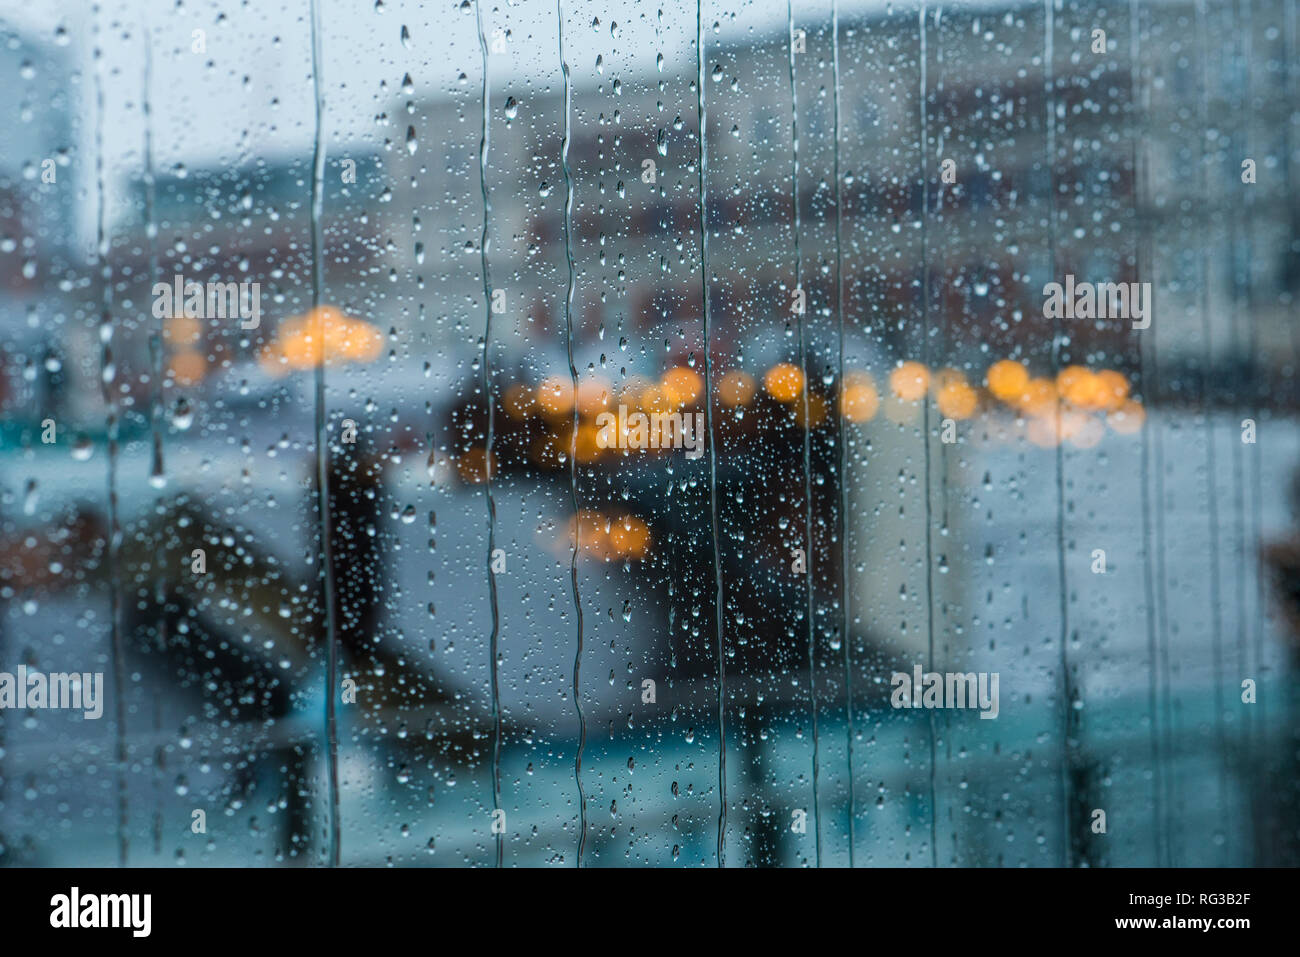 Rain pouring down window pane, defocussed city scene viewed through window, Central Leeds, Yorkshire, England, UK - Stock Image